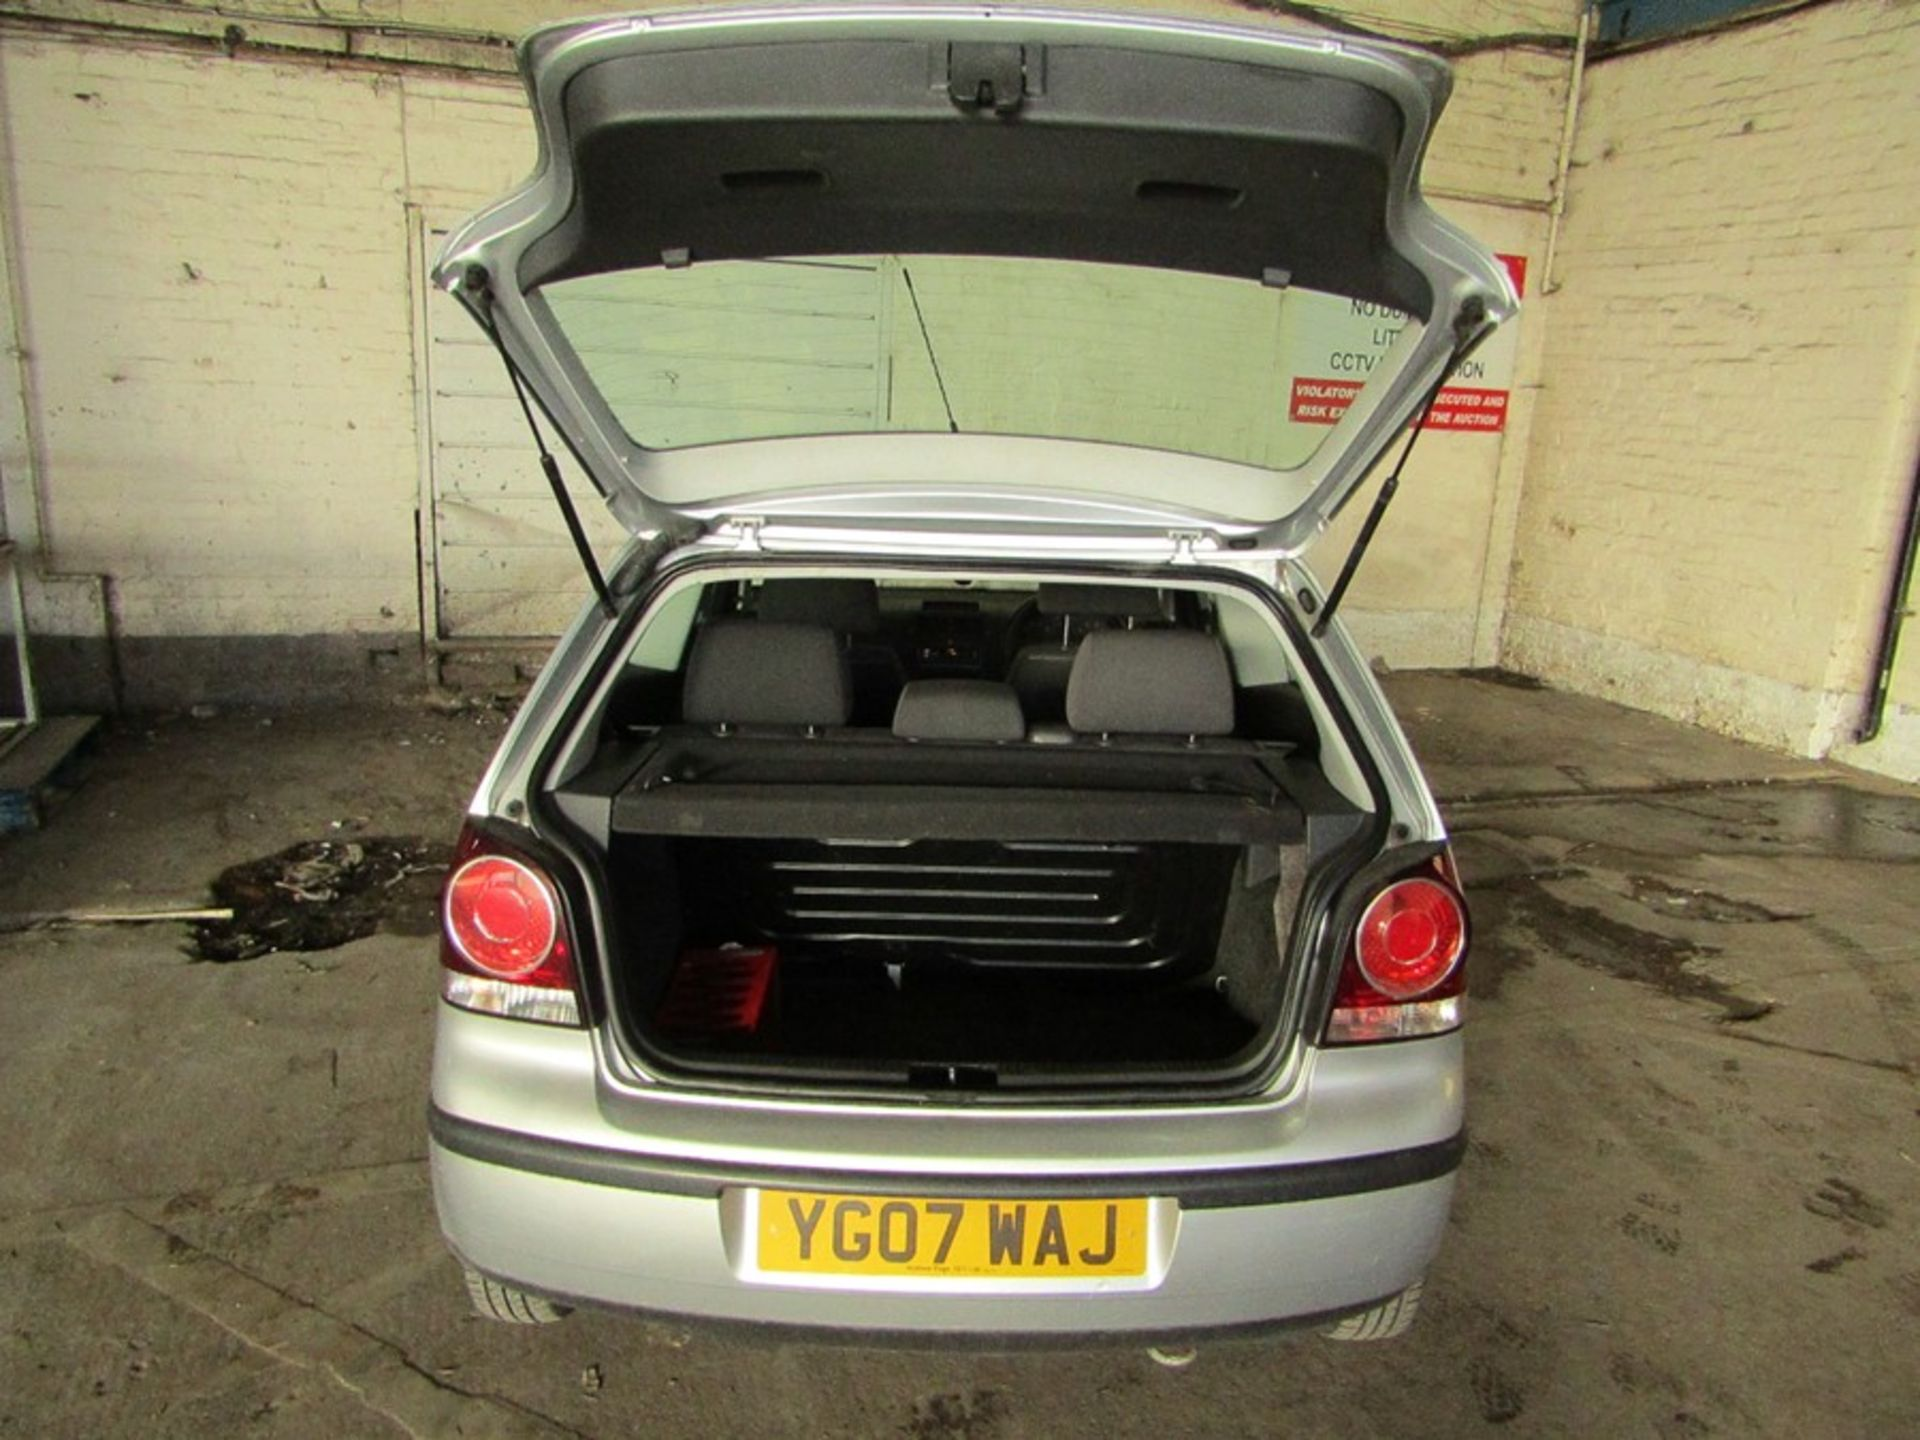 2007 Volkswagen Polo 1.2L hatchback, starts and drives 70,294 Miles Failed MOT 12/09/2020 due to; - Image 7 of 9